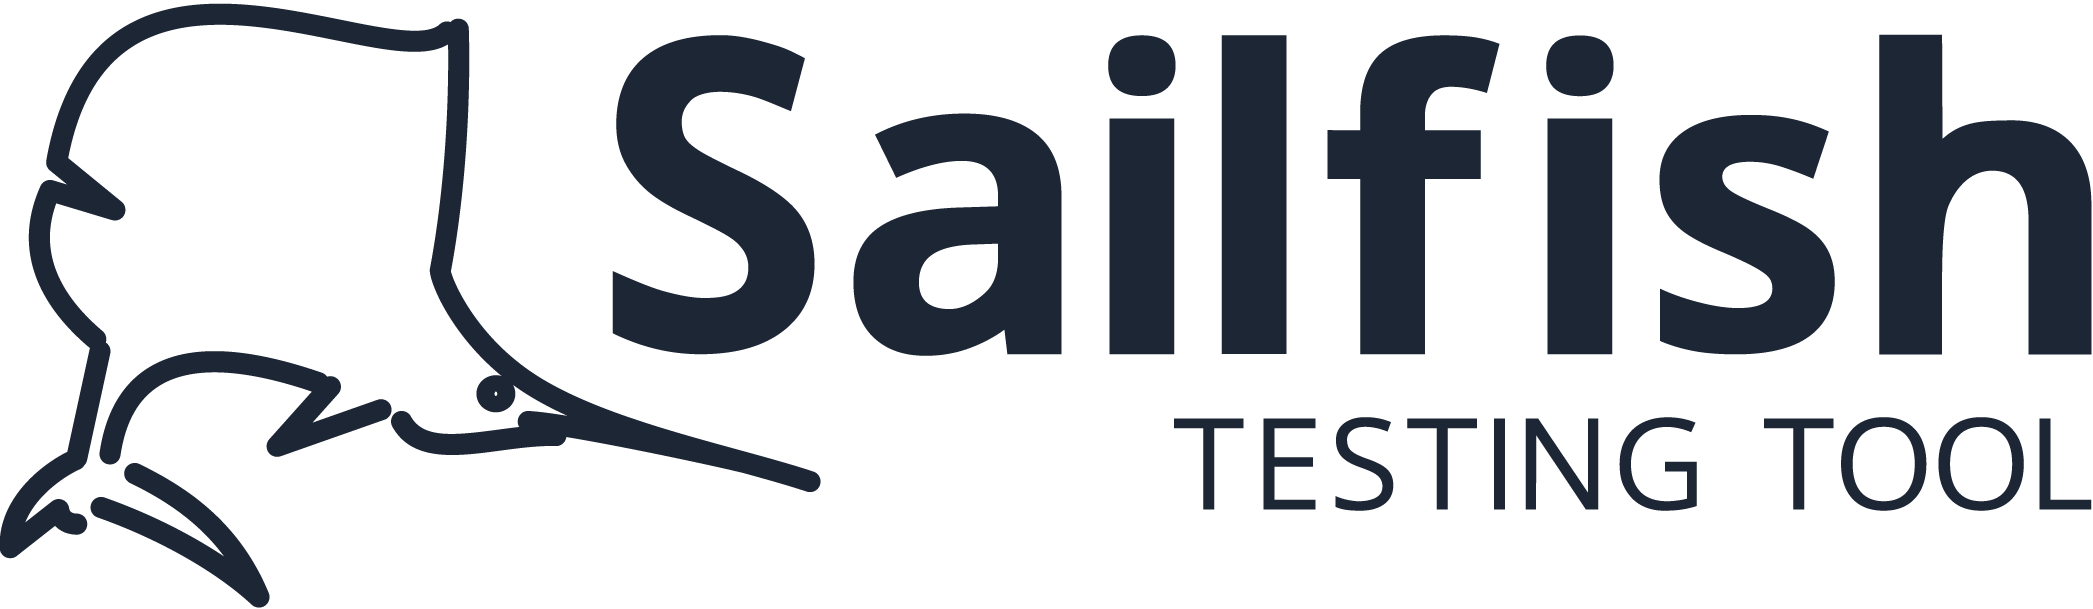 Exactpro Open-Source Strategy - SailFish to Open Source